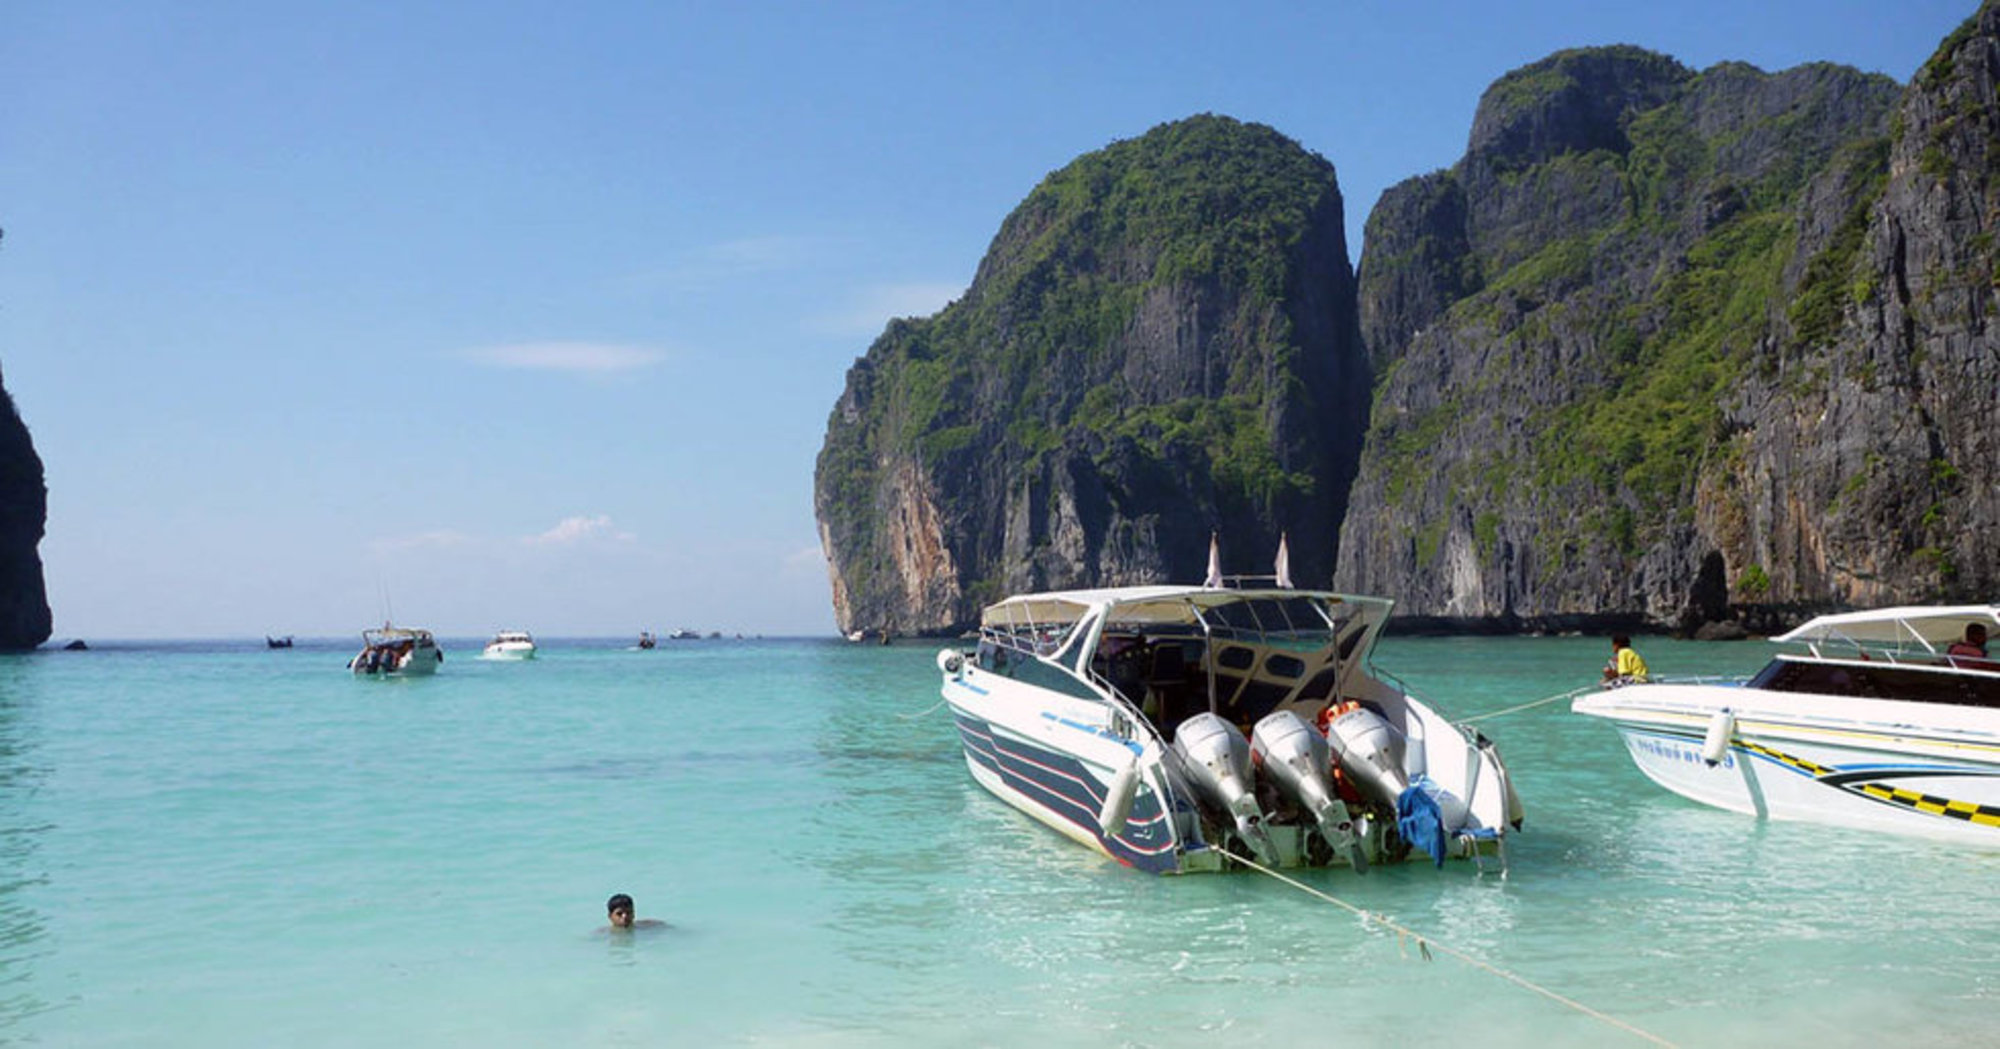 Thailand S Iconic Maya Bay Made Por By The Leonardo Dicaprio Film Beach Will Undoubtedly Be Closed To Tourists Indefinitely Cnn Travel Reported